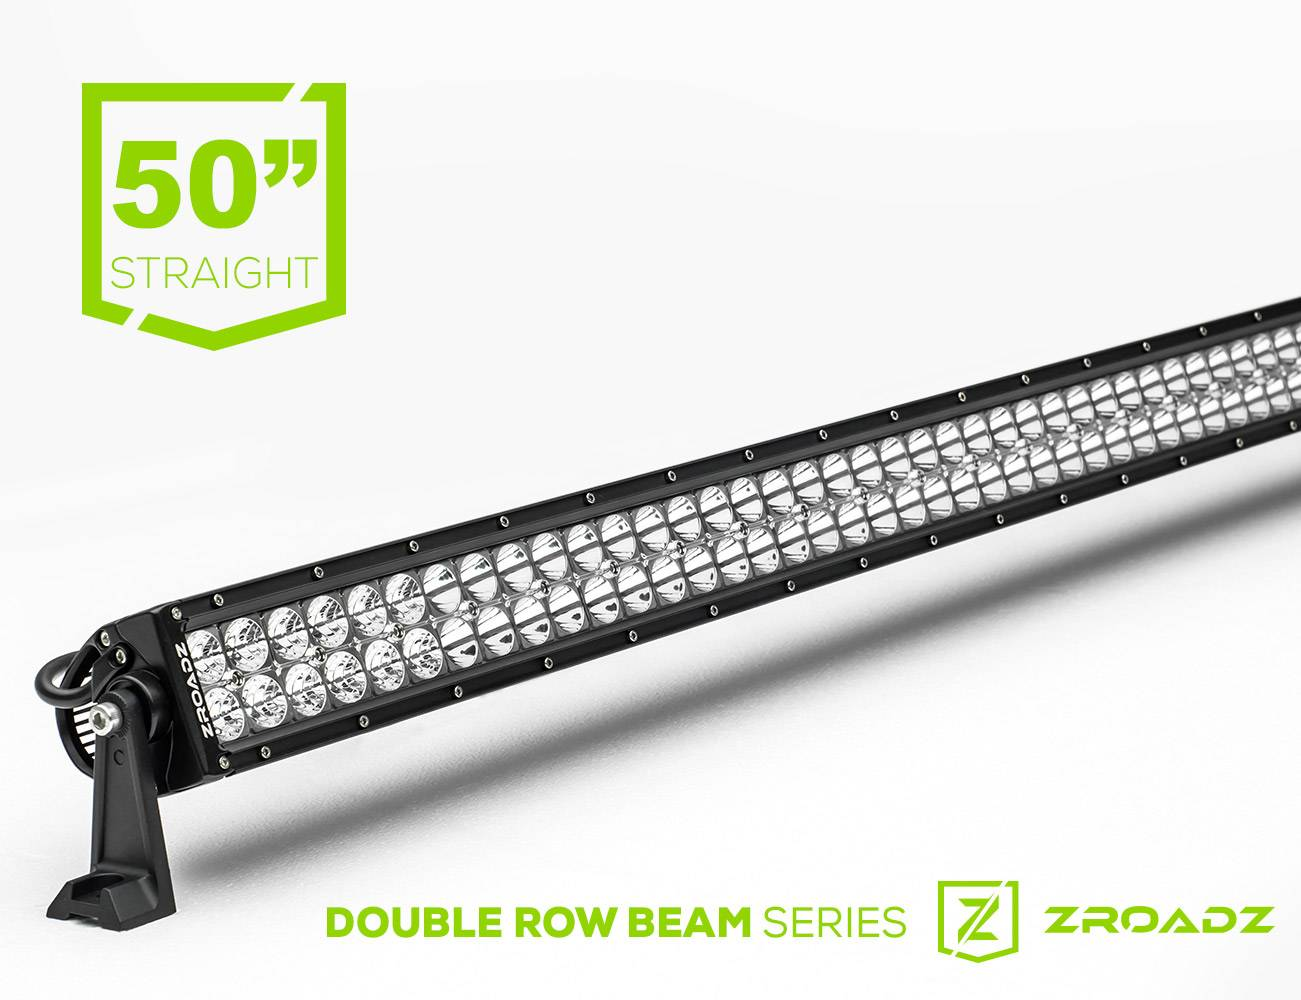 (1) 50 Inch LED Straight Double Row Light Bar - PN #Z30BC14W288